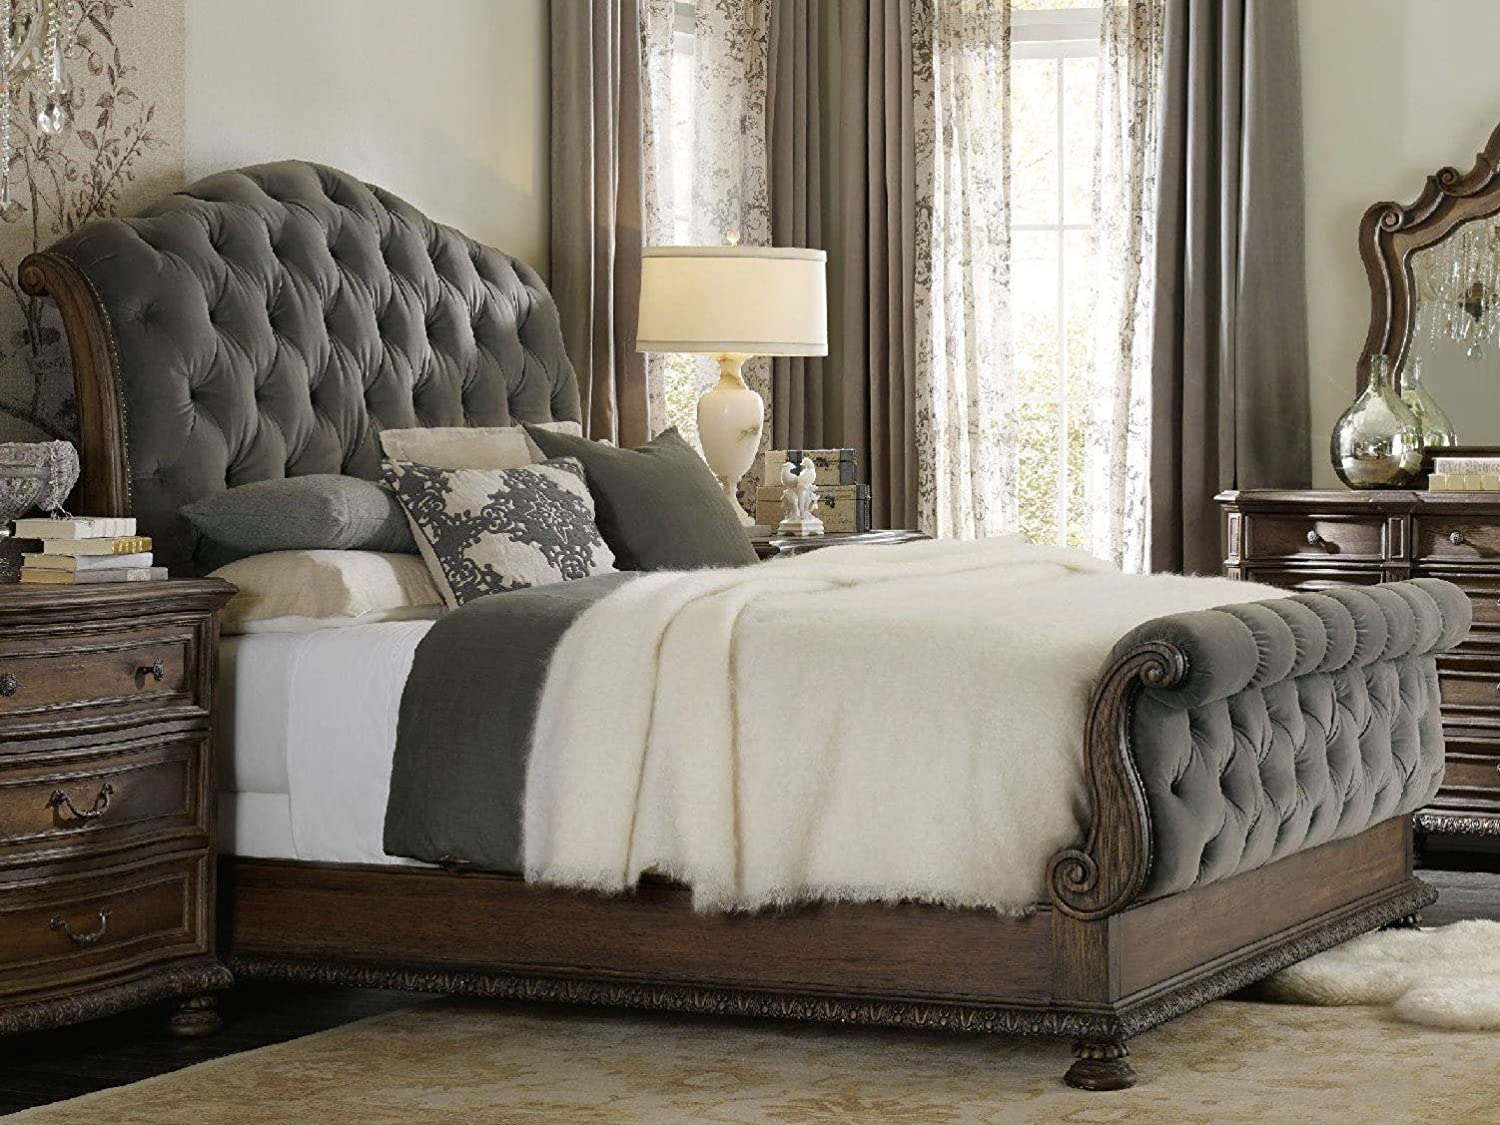 Hooker Furniture Rhapsody Tufted King Our Max 63% OFF shop OFFers the best service Bed Gray in Fog